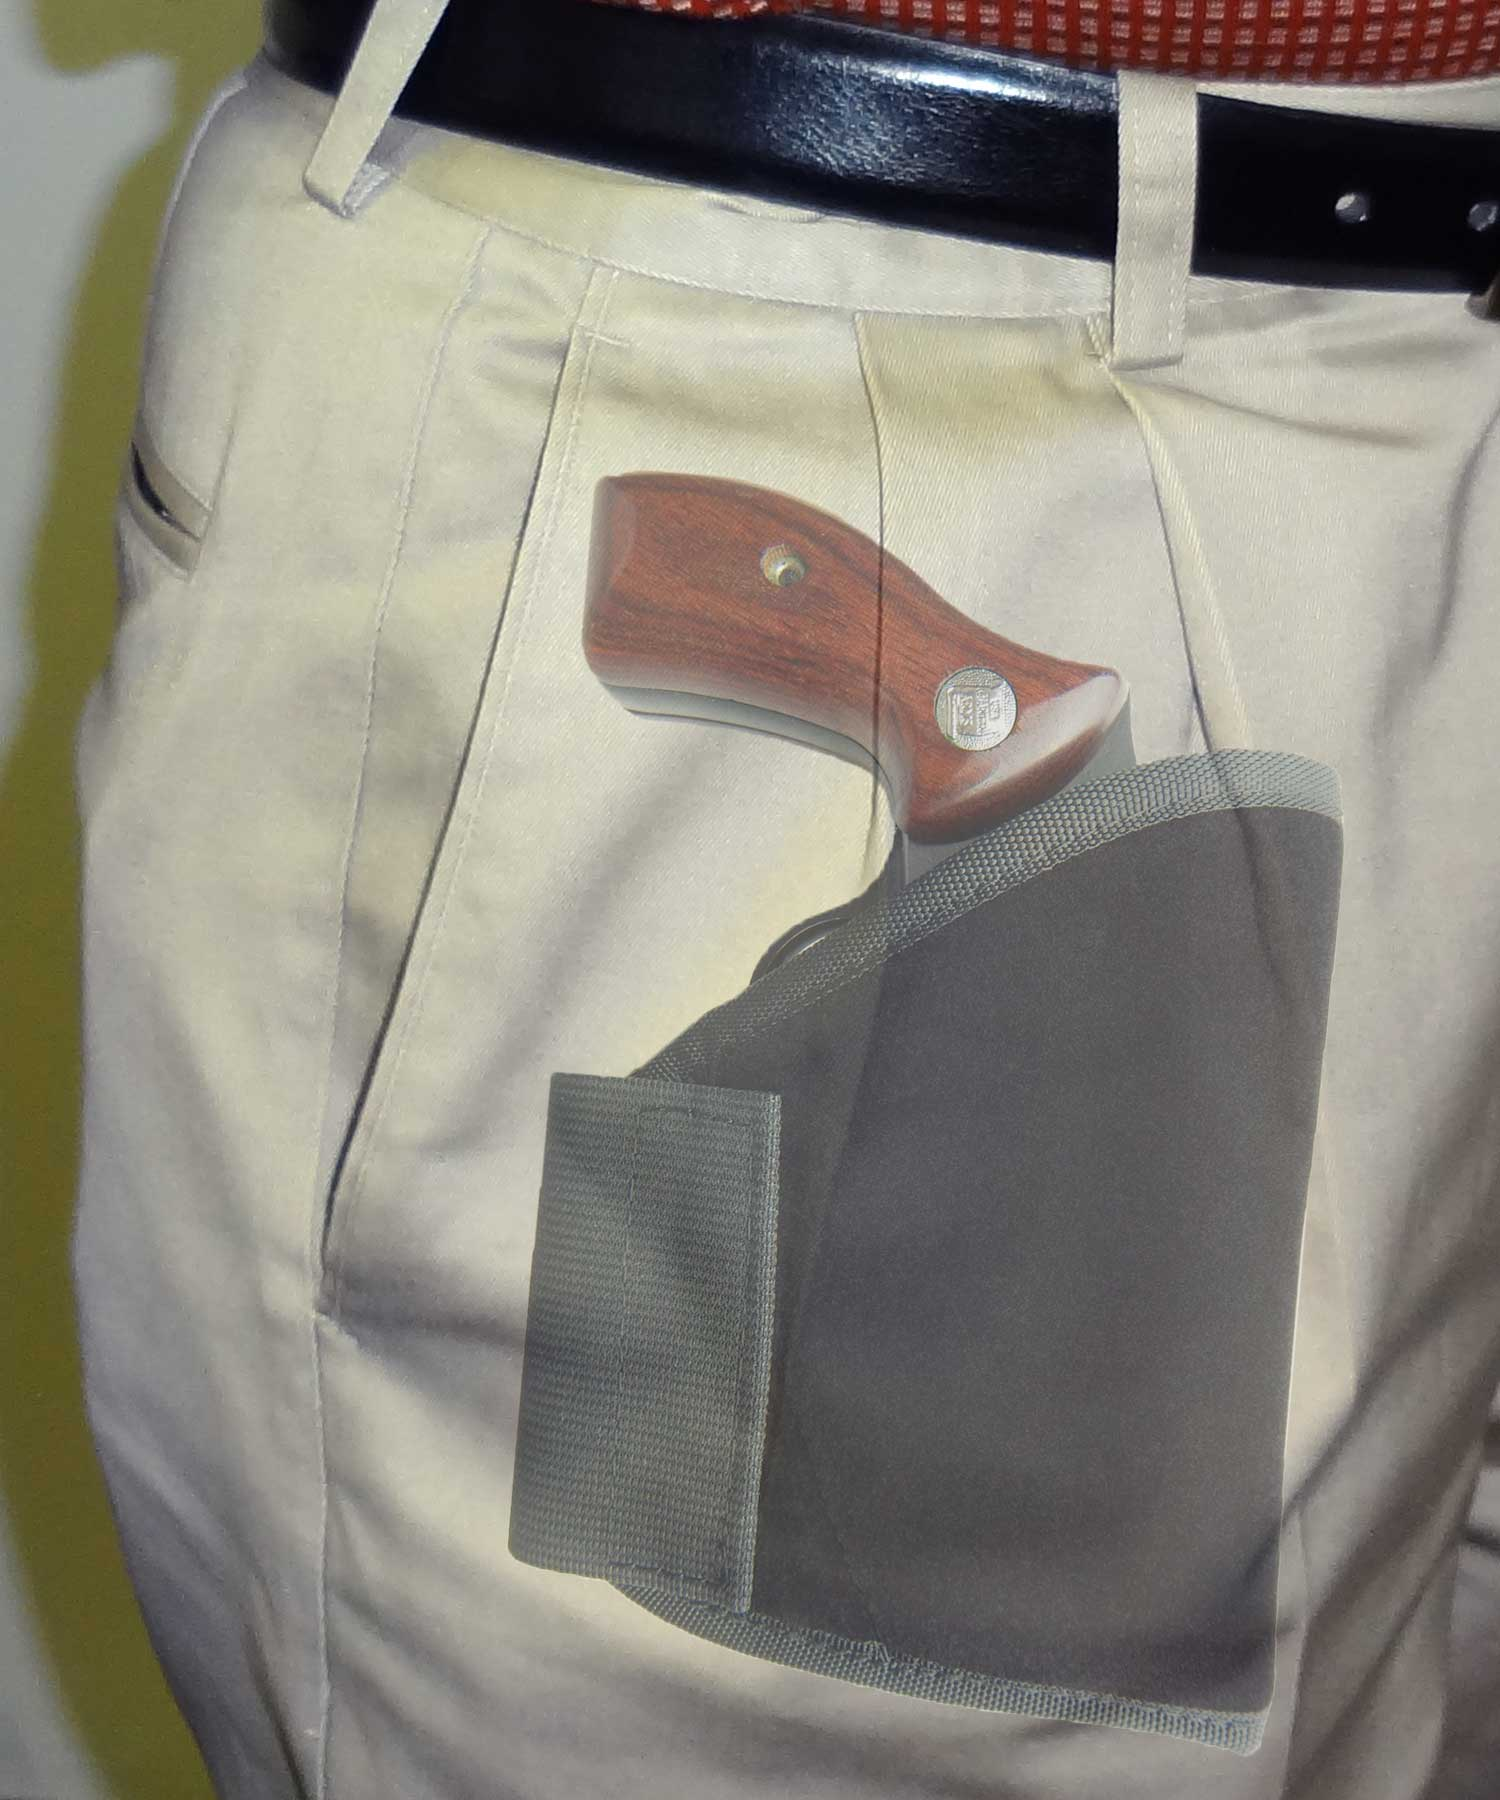 Concealment Pocket Holster with Extra Ammo